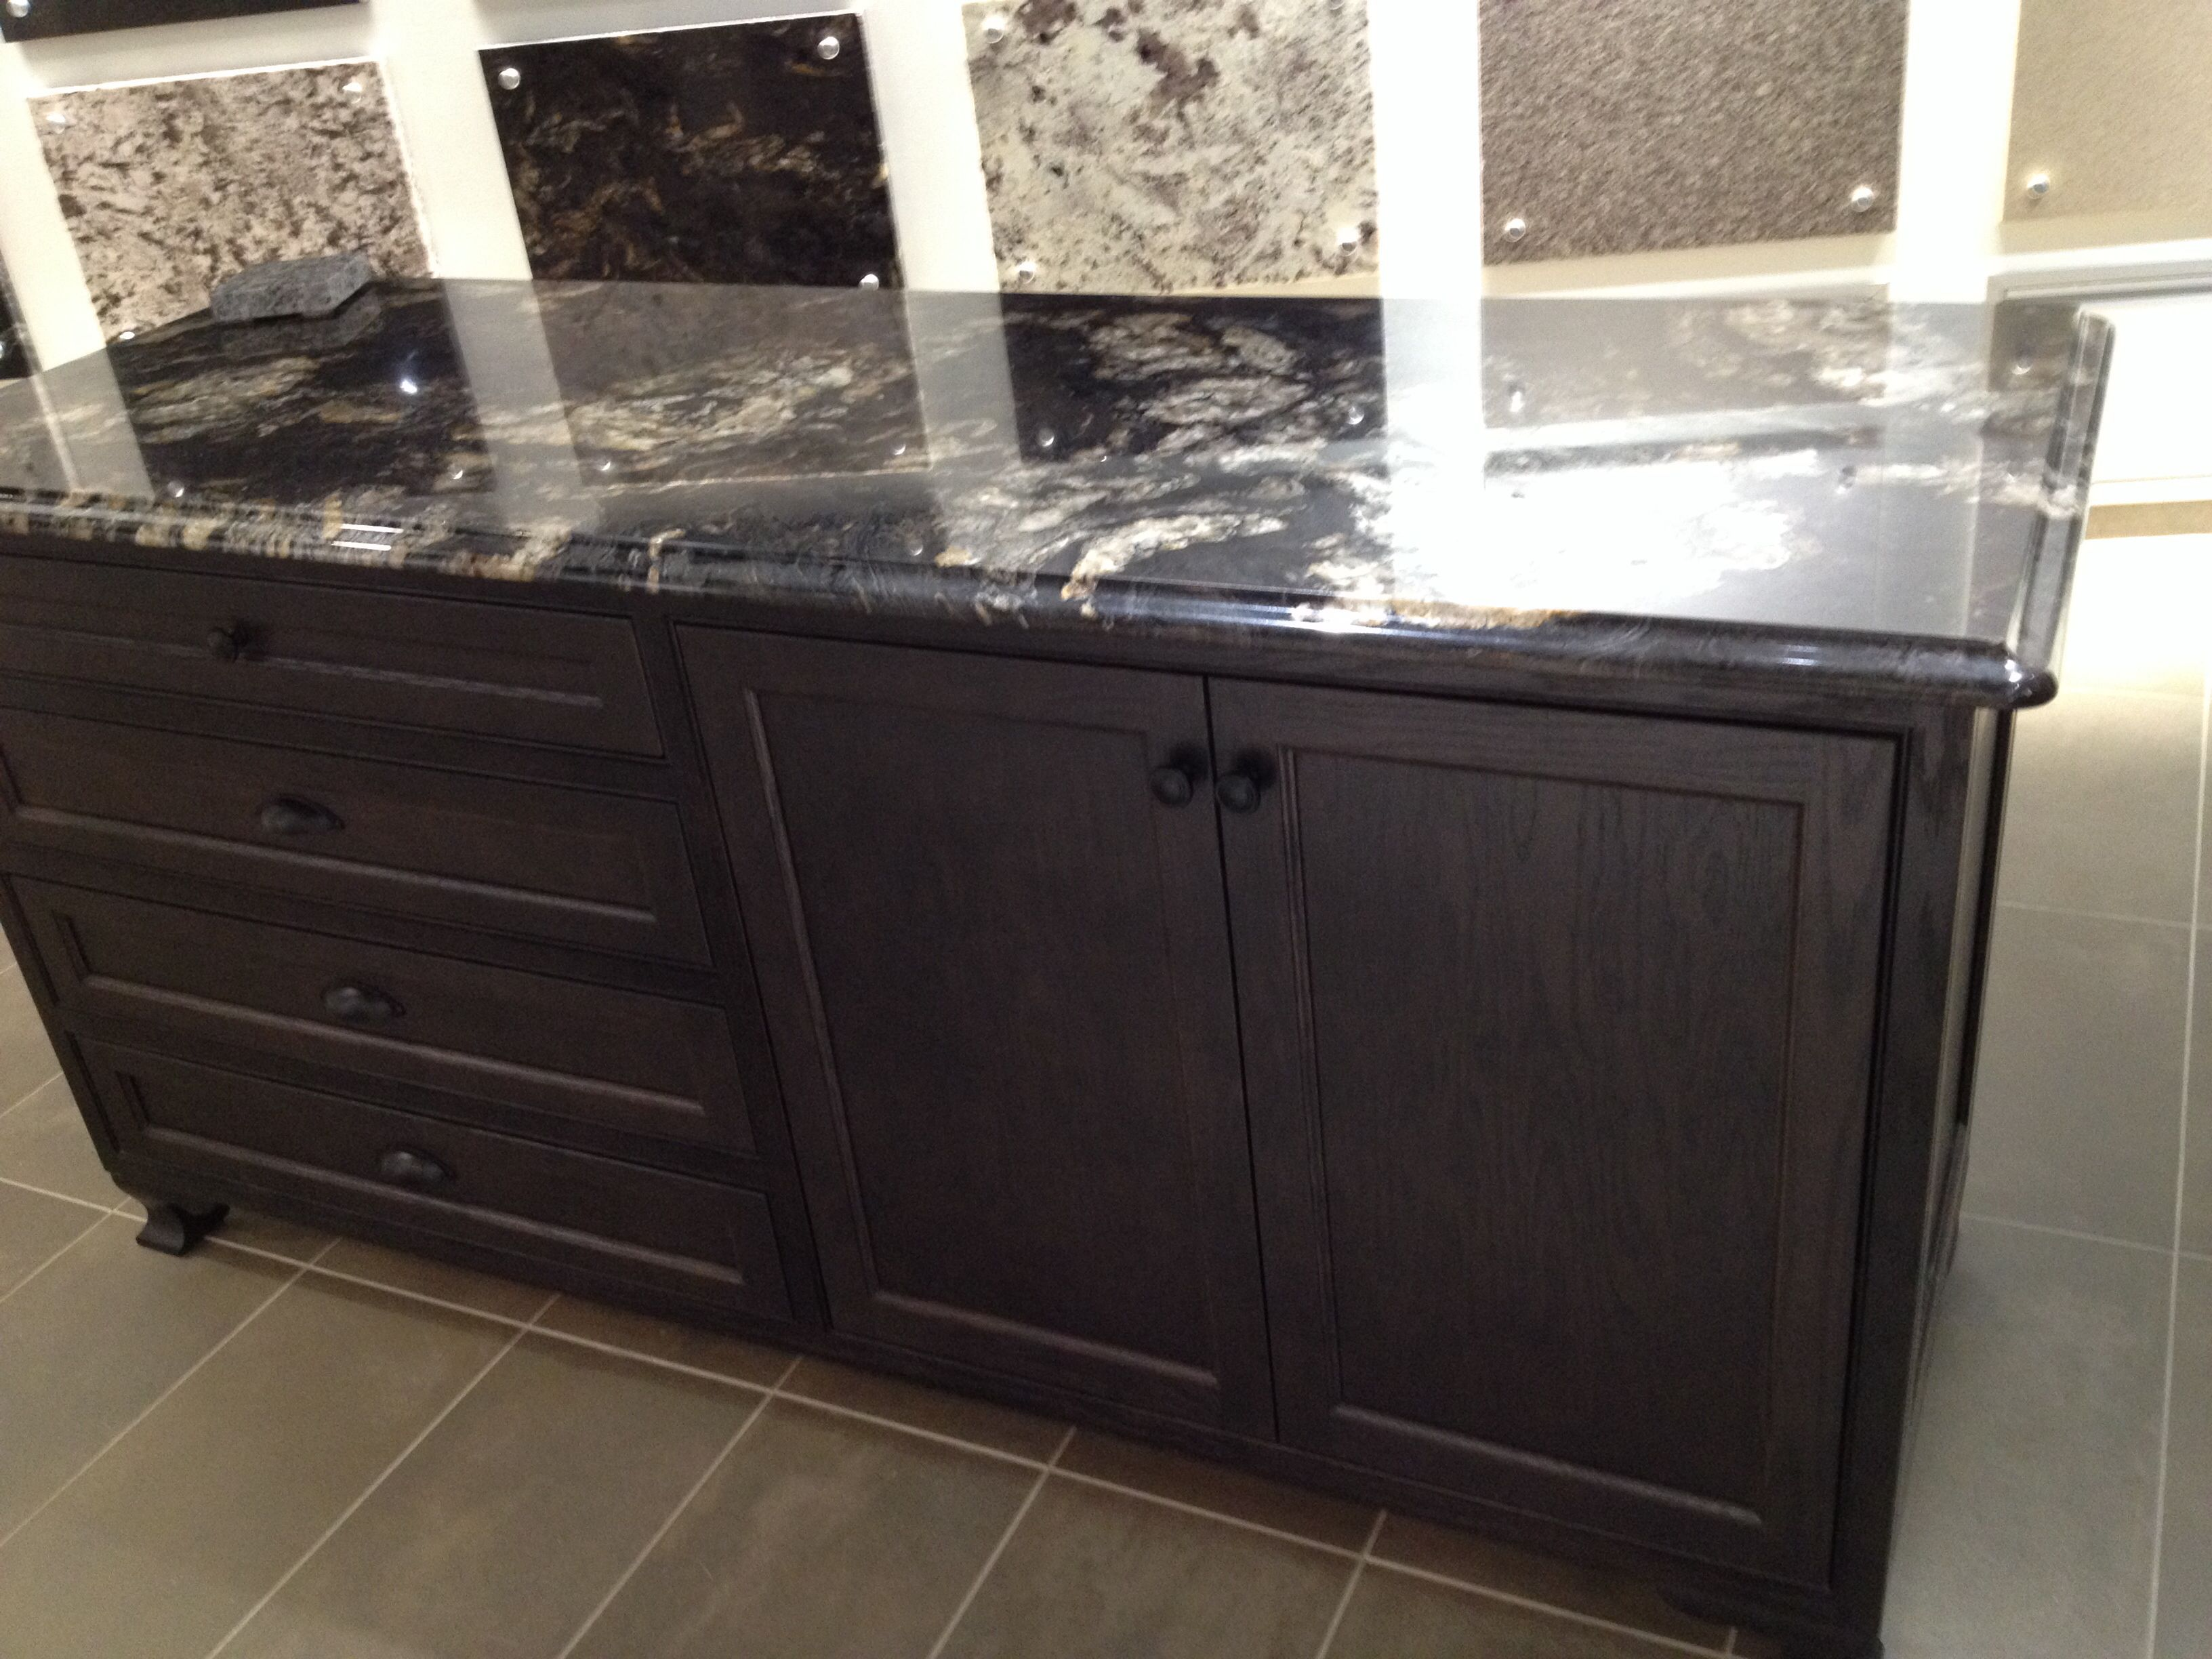 Black Titanium Granite Countertops Black Titanium Granite With Dark Brown Cabinets Home